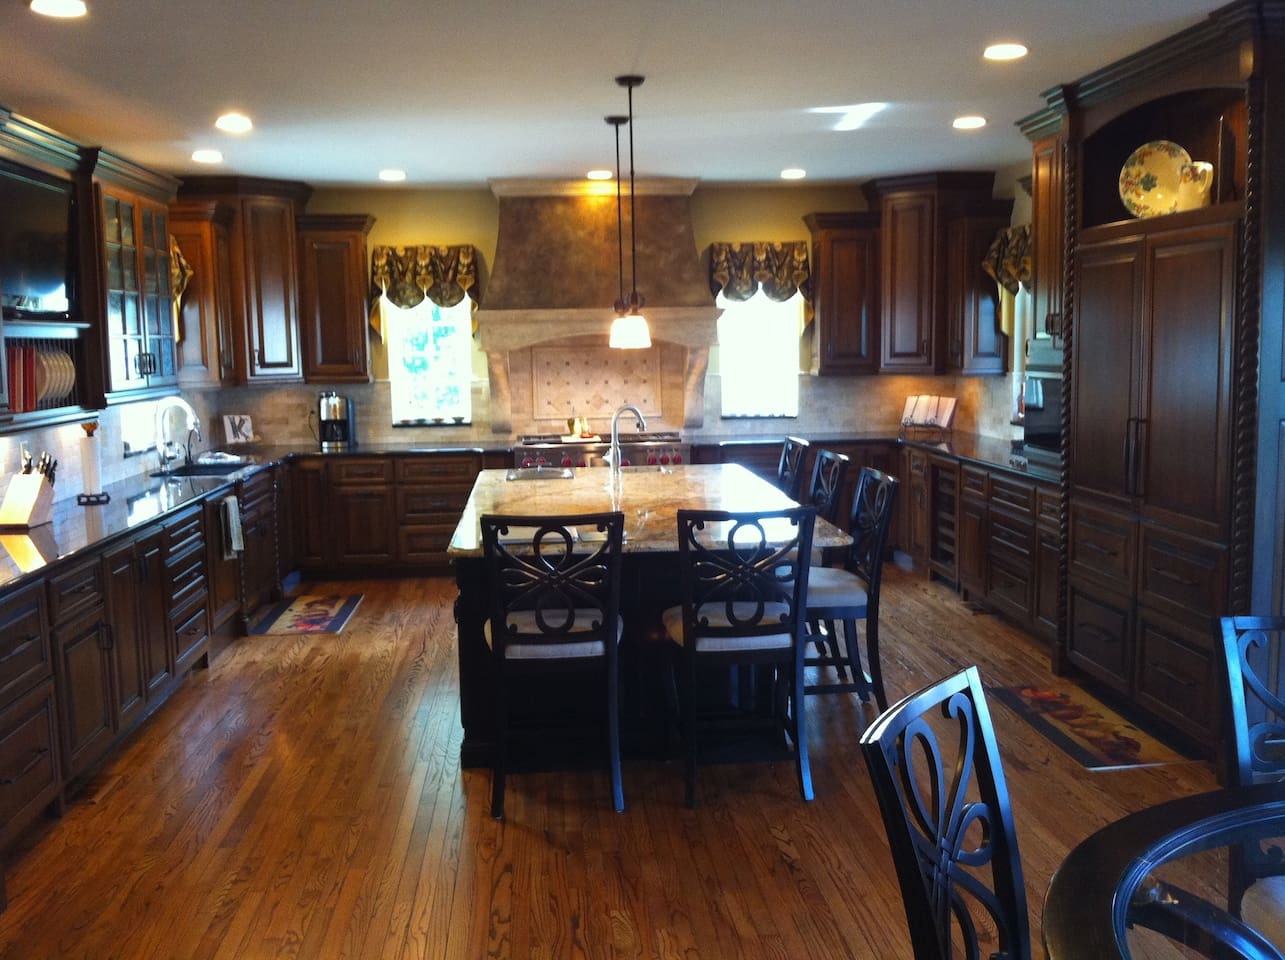 Our recently remodeled kitchen